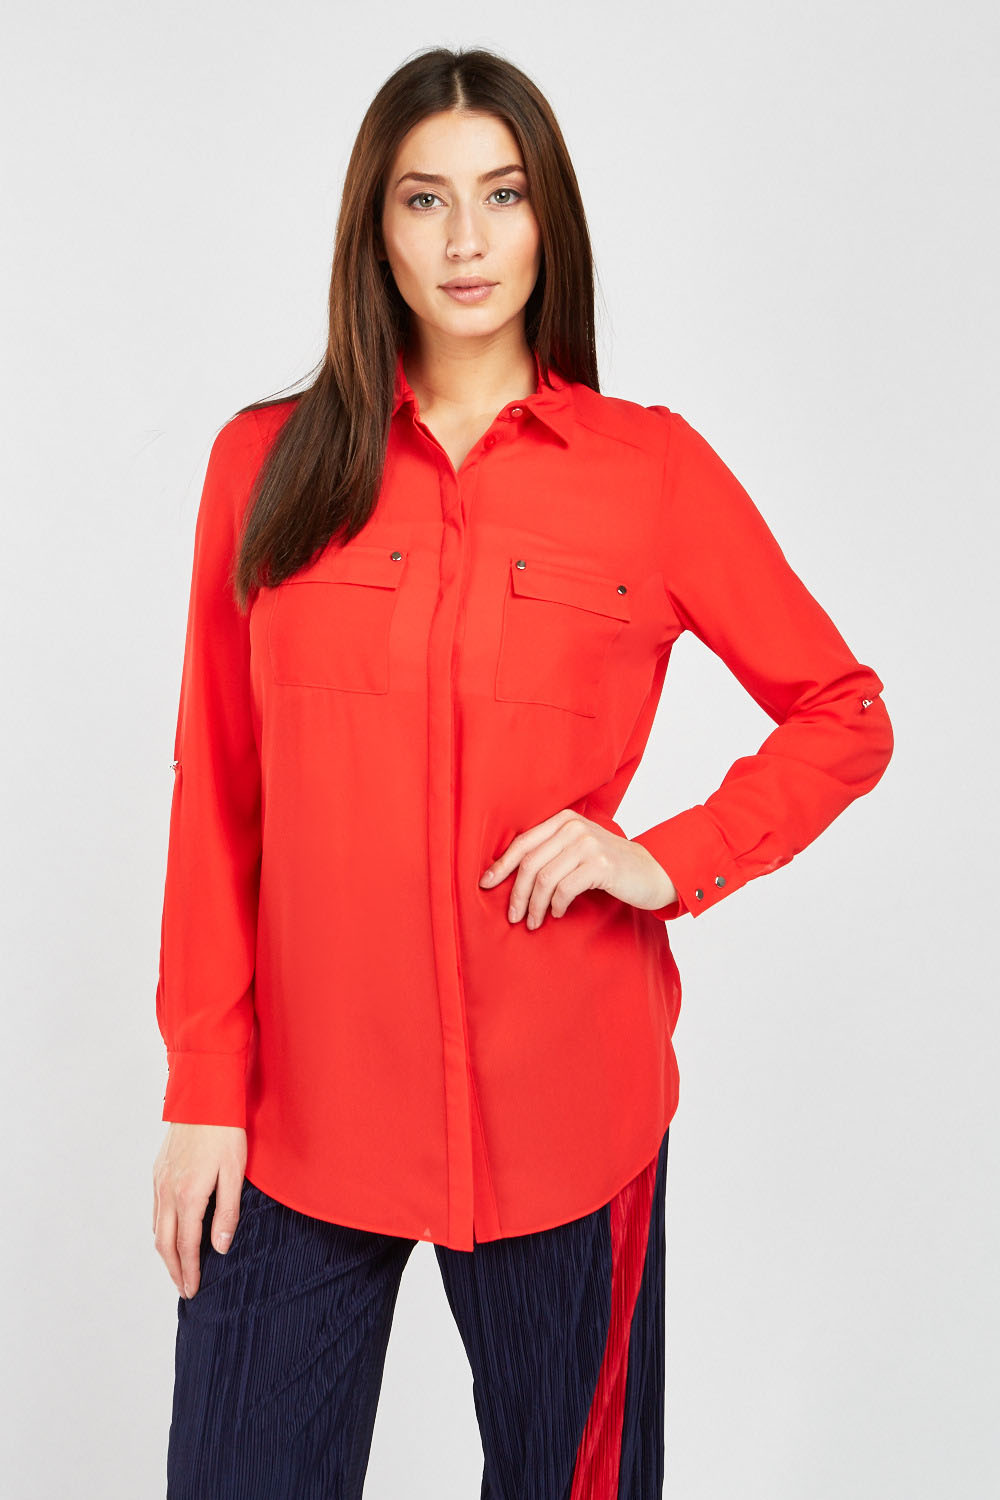 679faf71686d8 Twin Pocket Front Chiffon Blouse - Red - Just £5